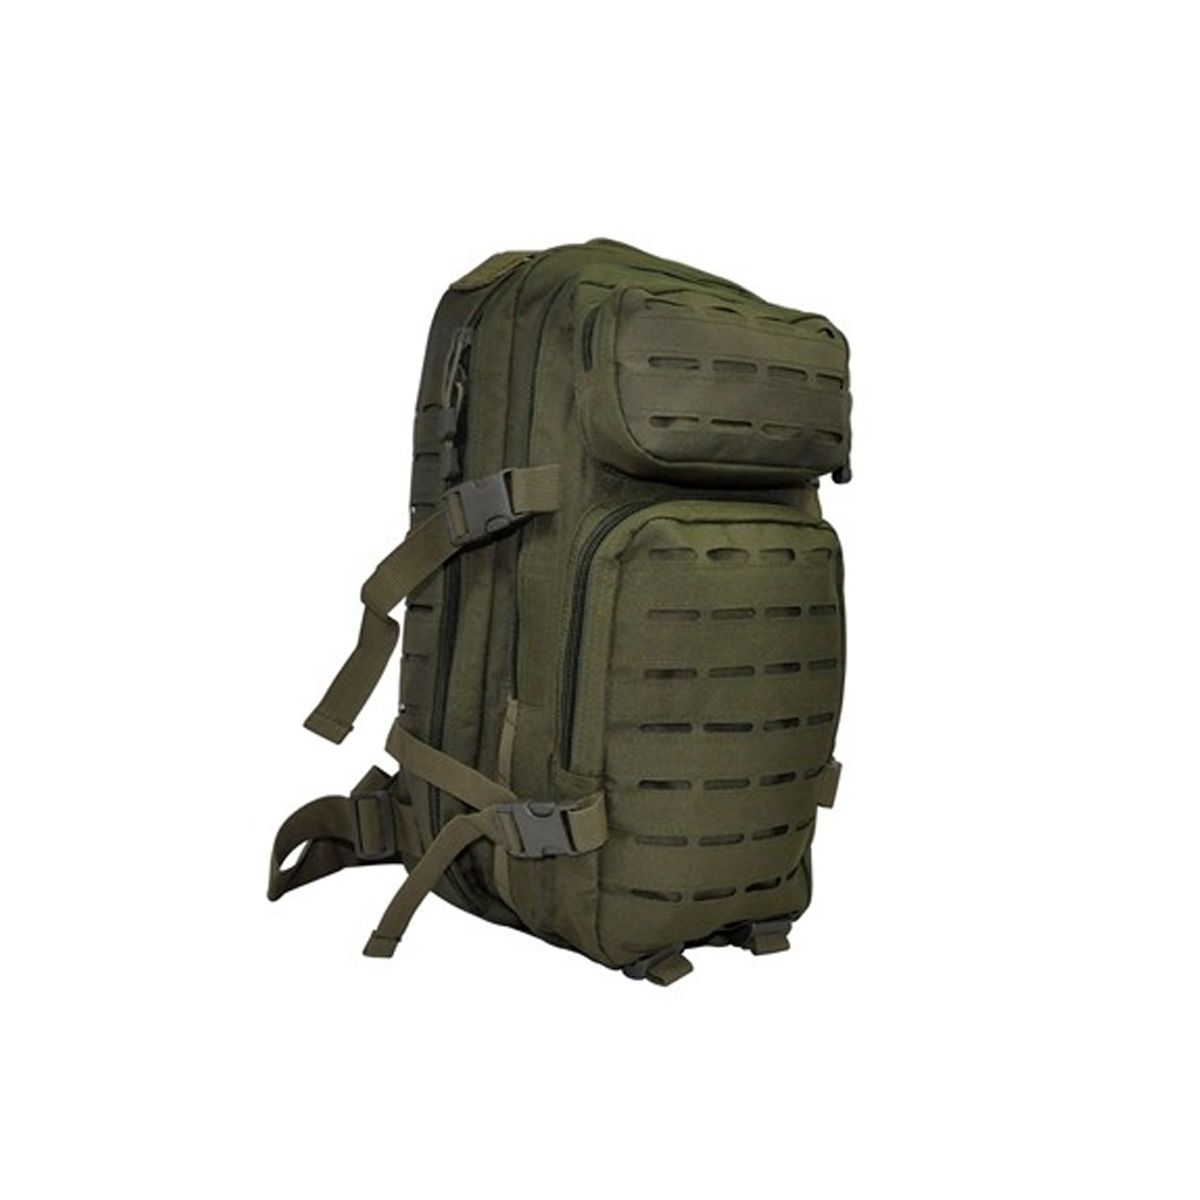 Mochila Tatica US ASSAULT - EVO